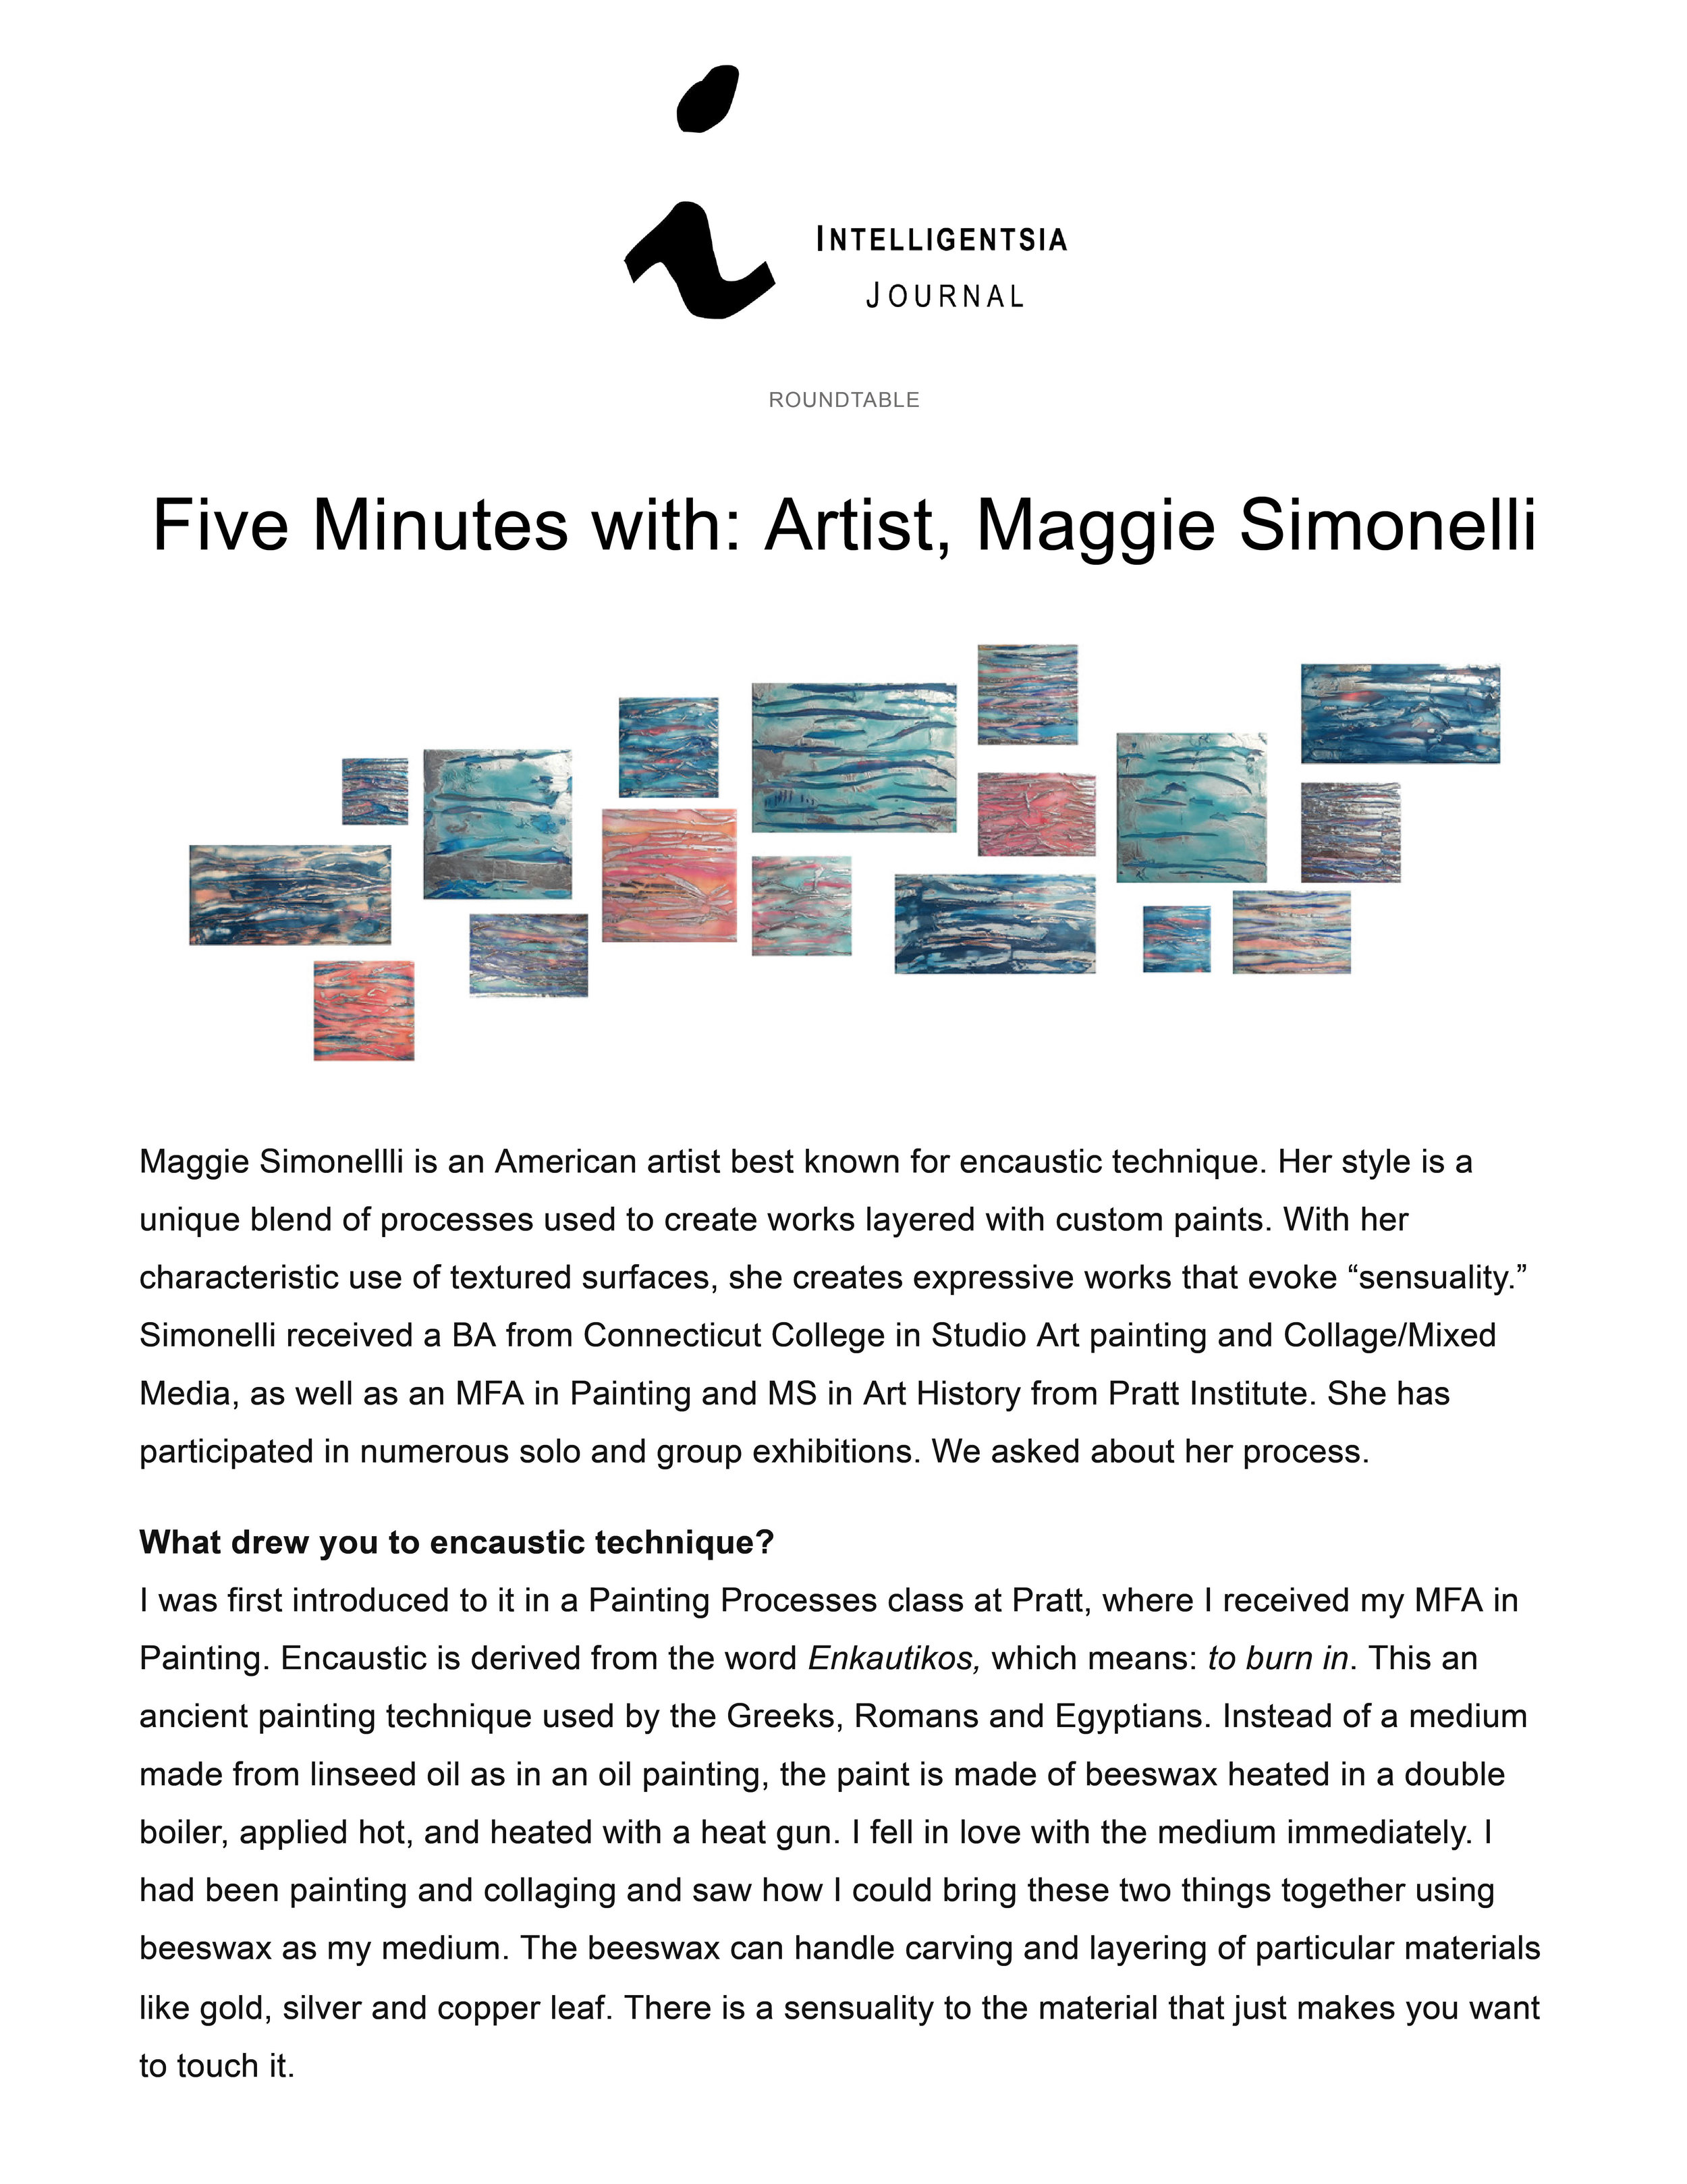 Five Minutes with artist Maggie Simonelli for Intelligentsia ournal written by Christina Spearman